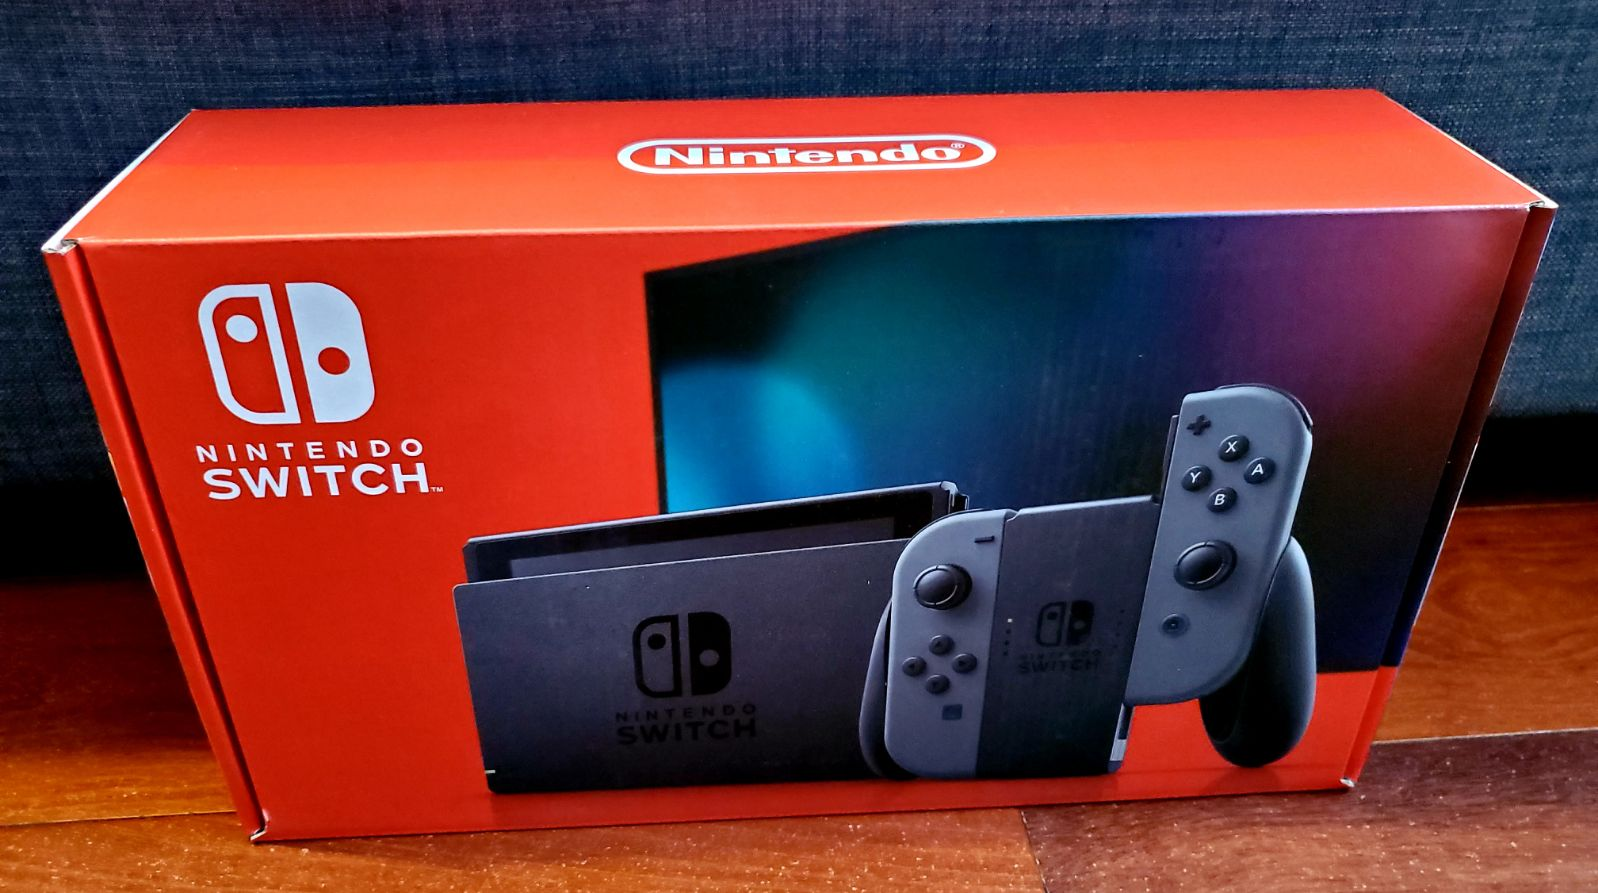 Nintendo Switch 32GB Grey Joy-Con